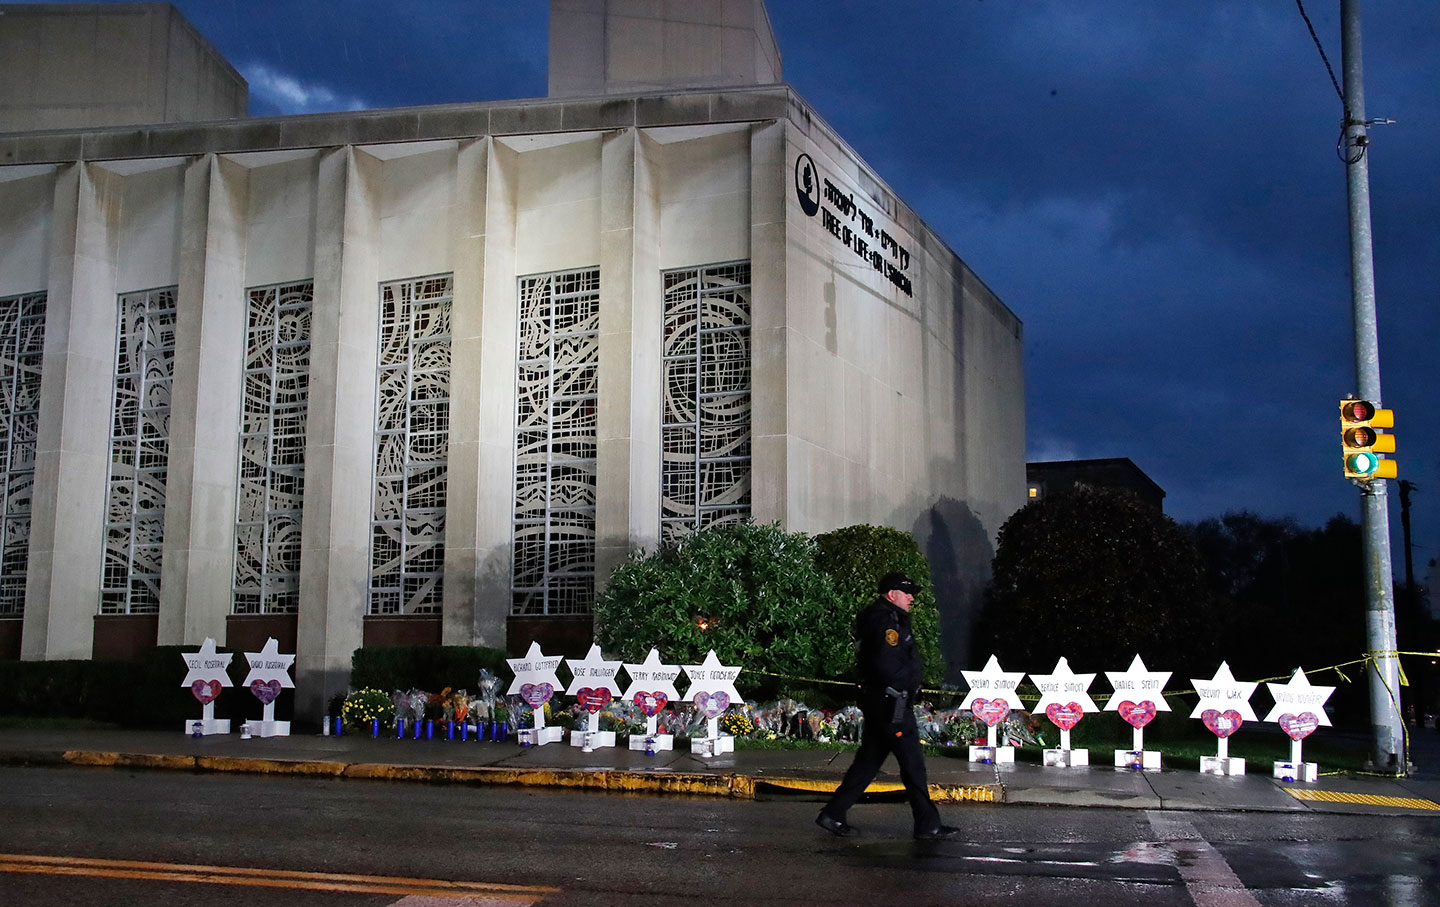 A memorial in Pittsburgh at the Tree of Life synagogue.